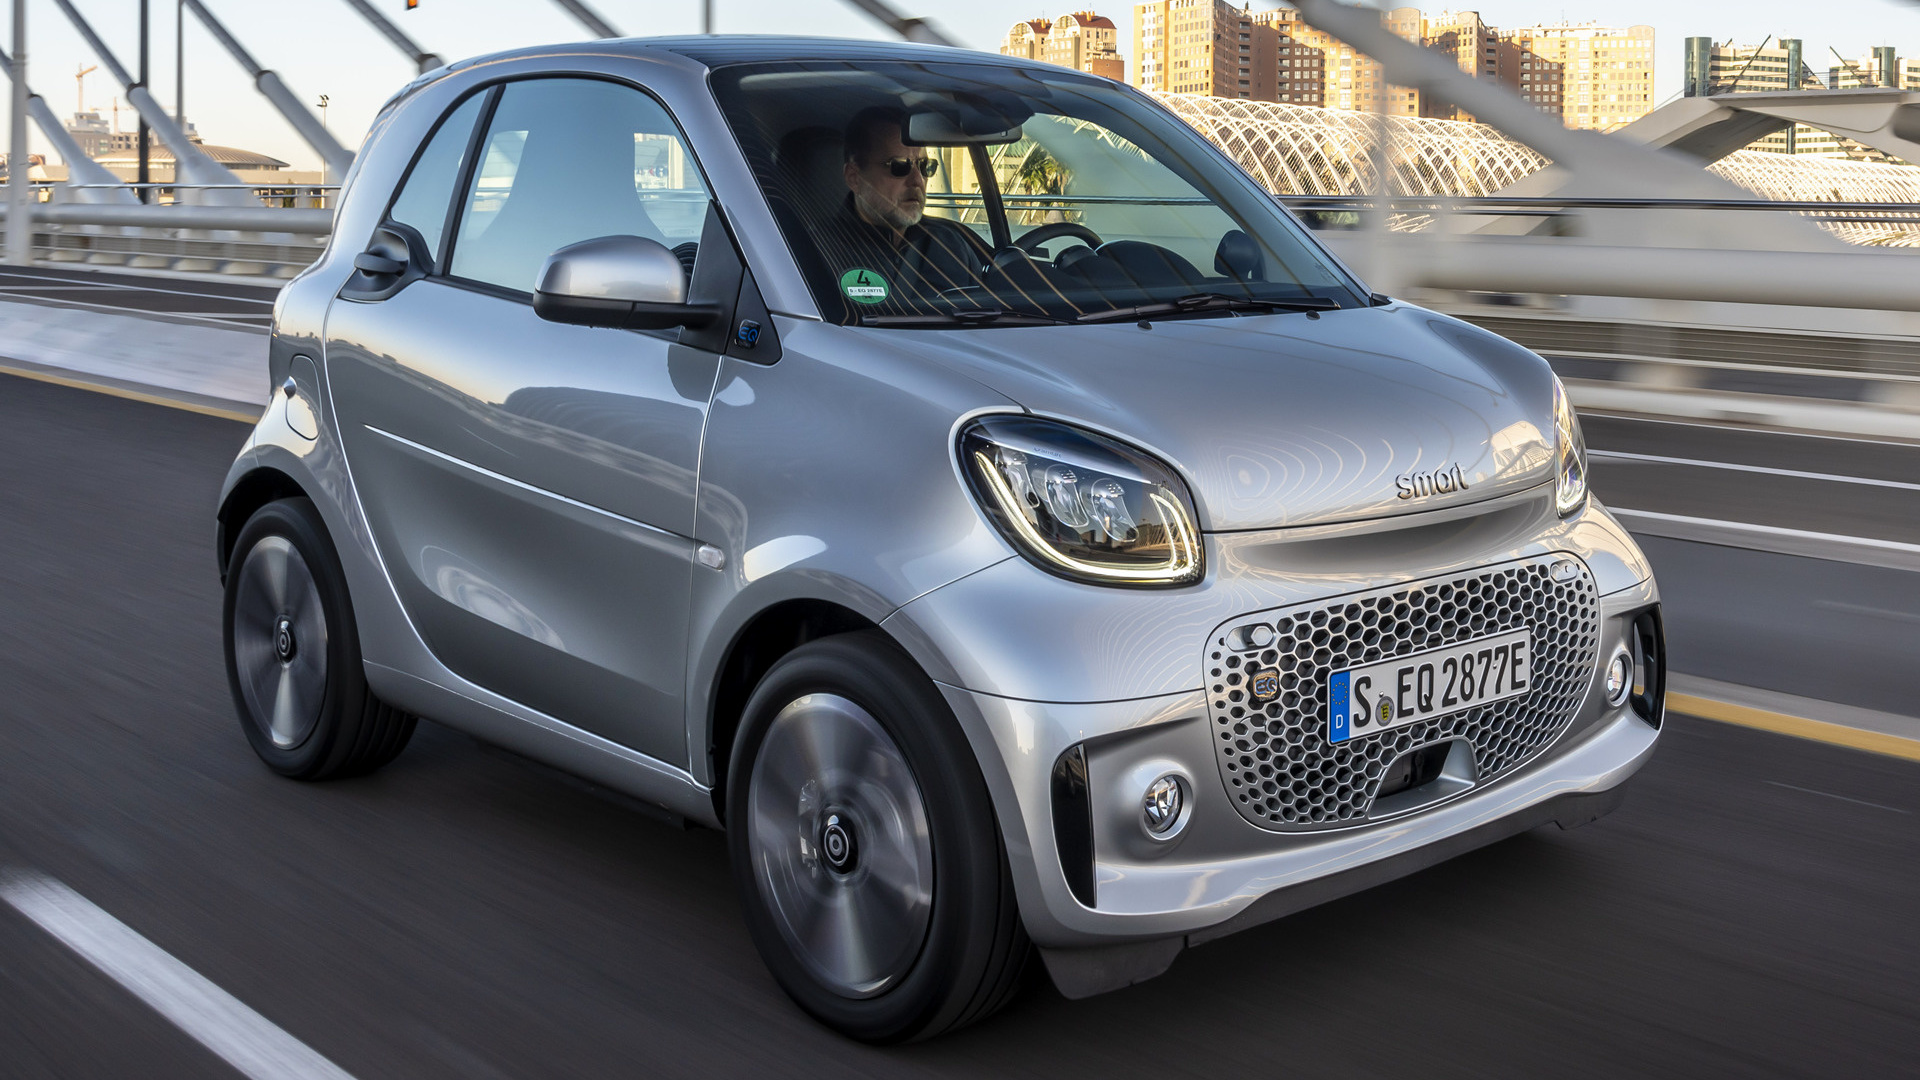 2020 smart eq fortwo  wallpapers and hd images  car pixel